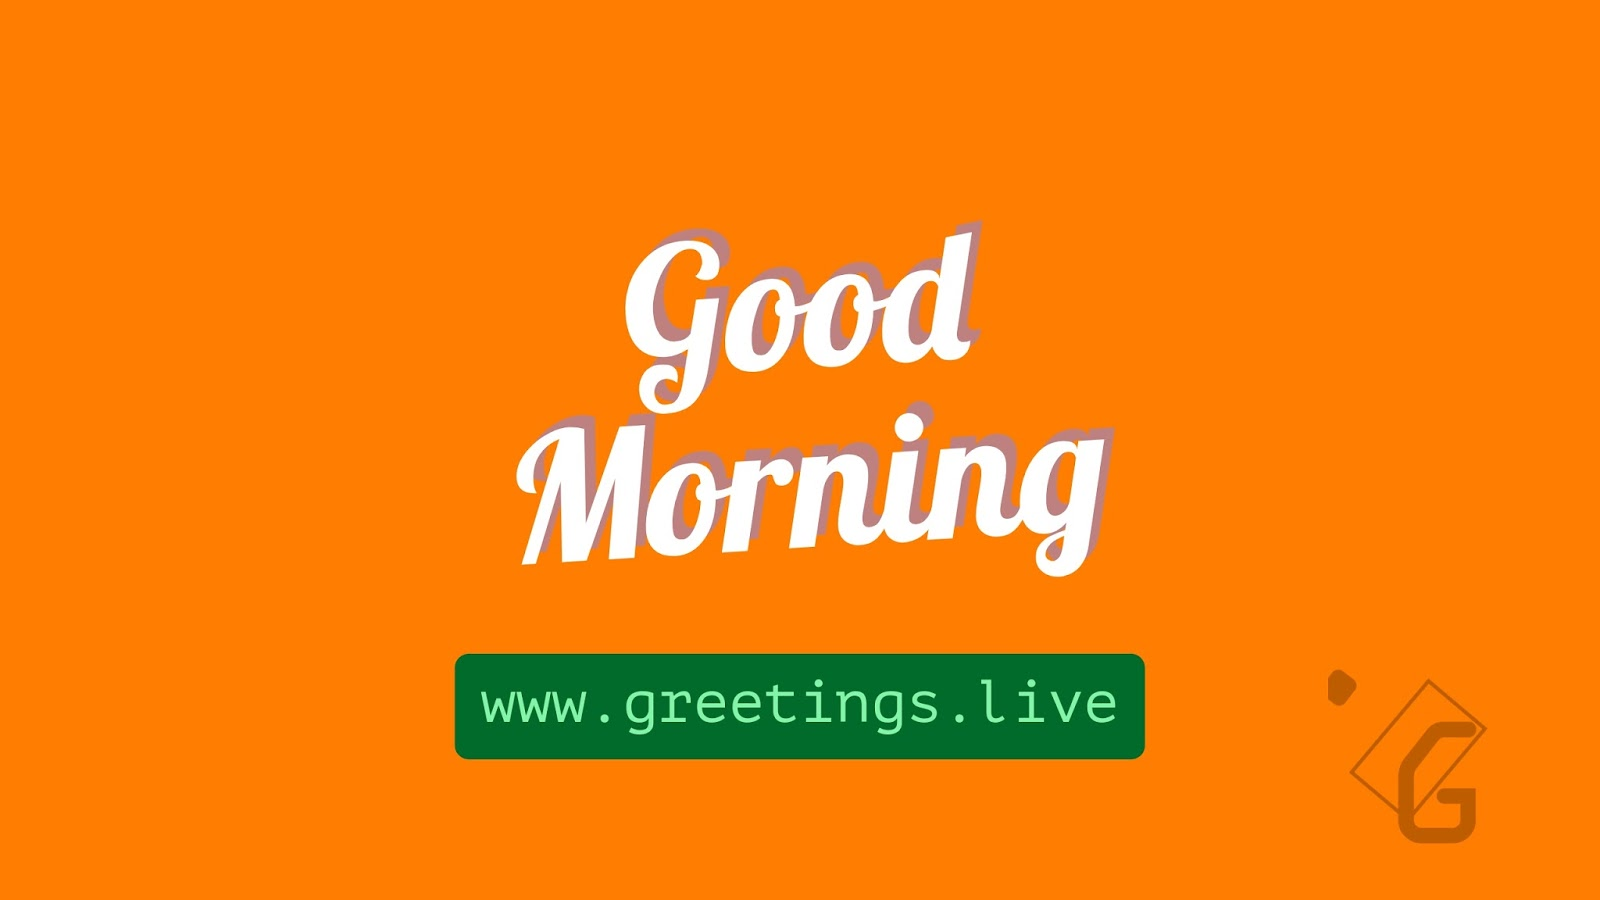 Greetingsve free hd images to express wishes all occasions 5 enticing good morning greetings for daily happy life m4hsunfo Gallery